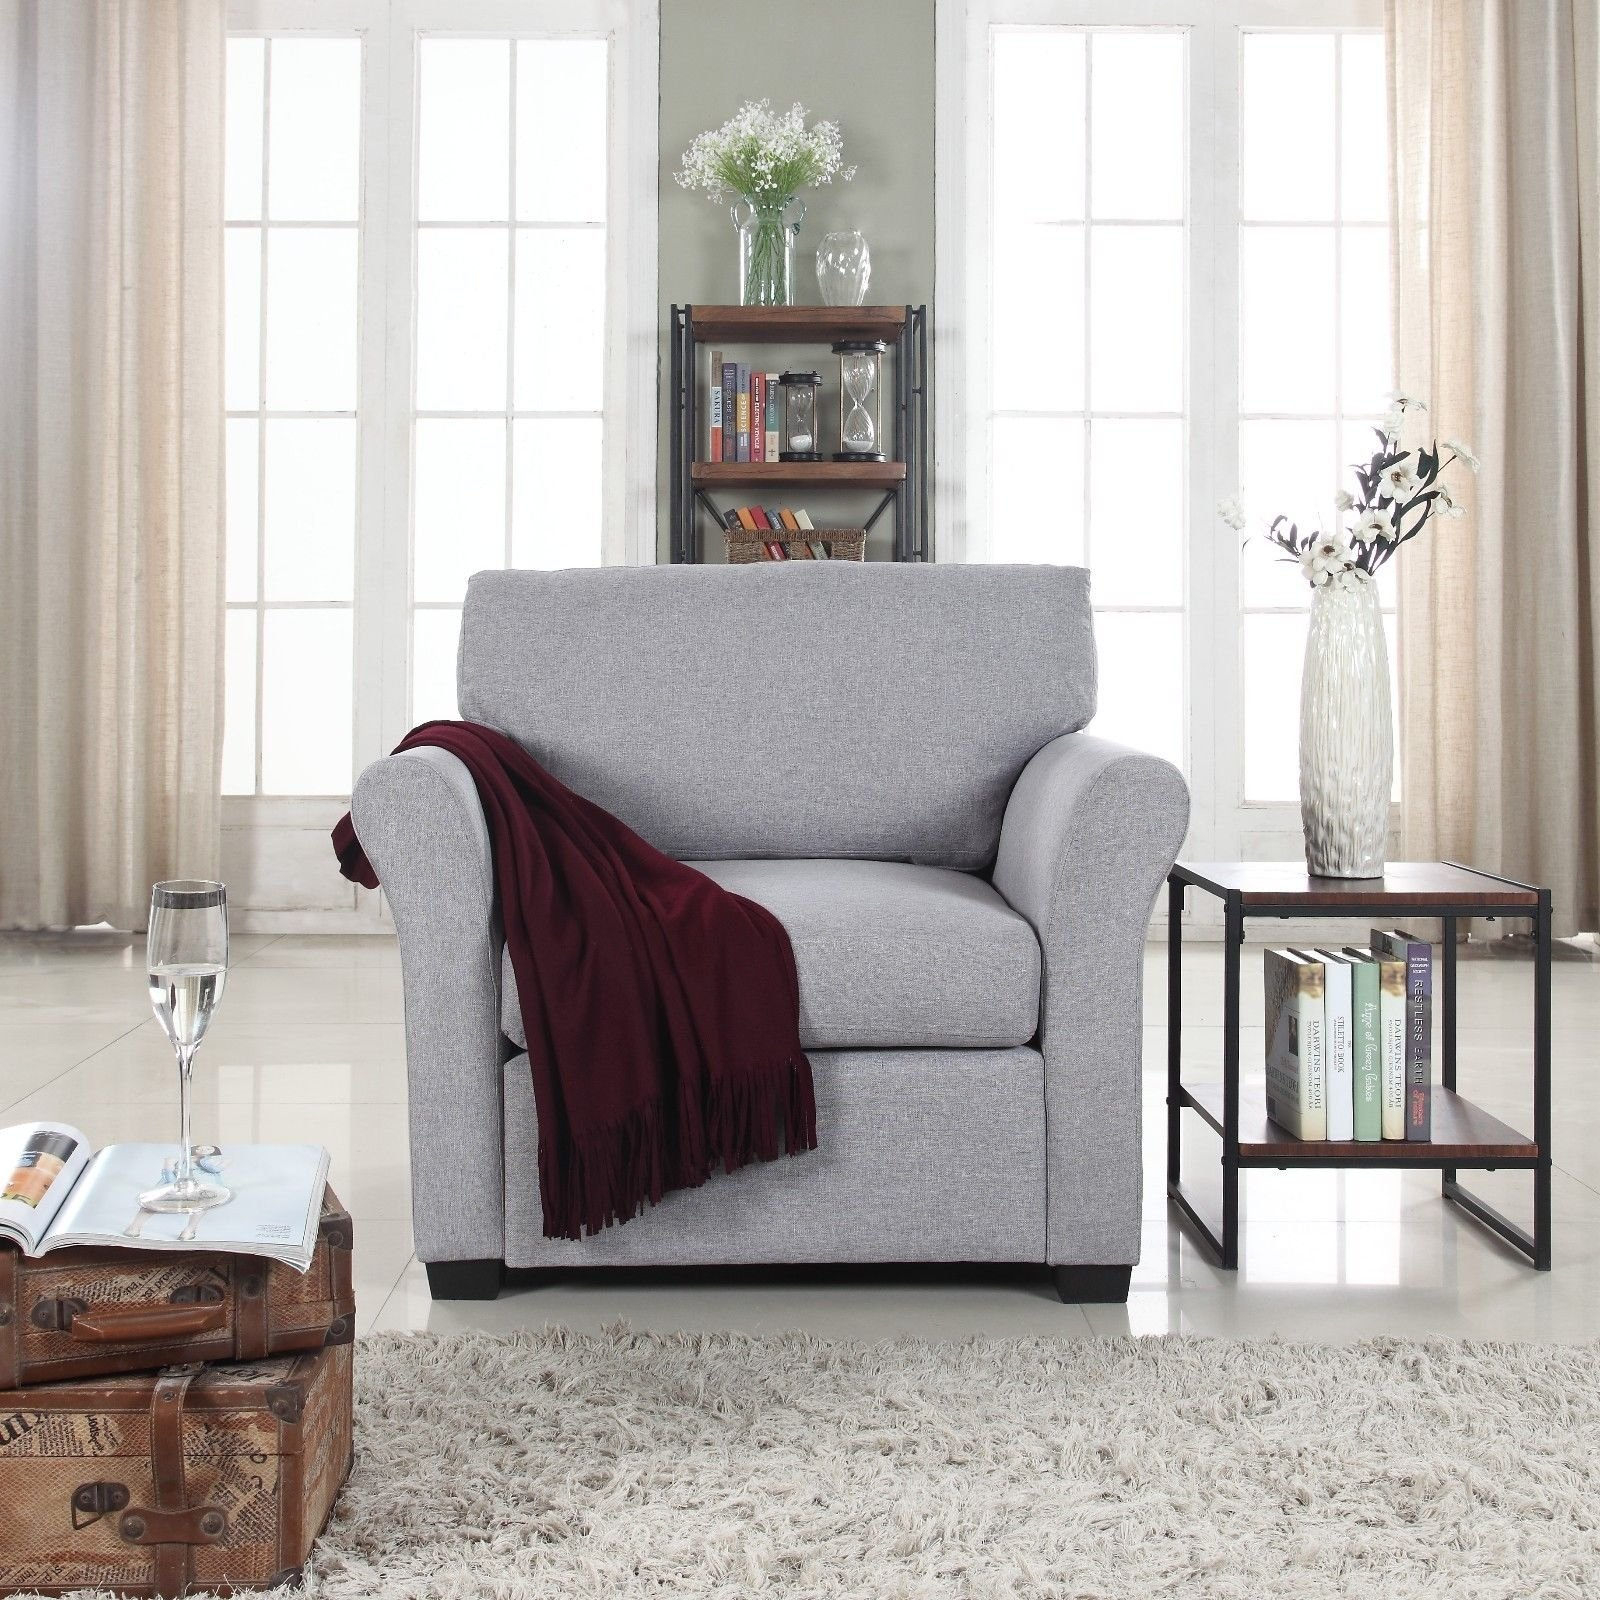 Details about Classic Traditional Linen Fabric Accent Chair Armchair for  Living Room, Grey